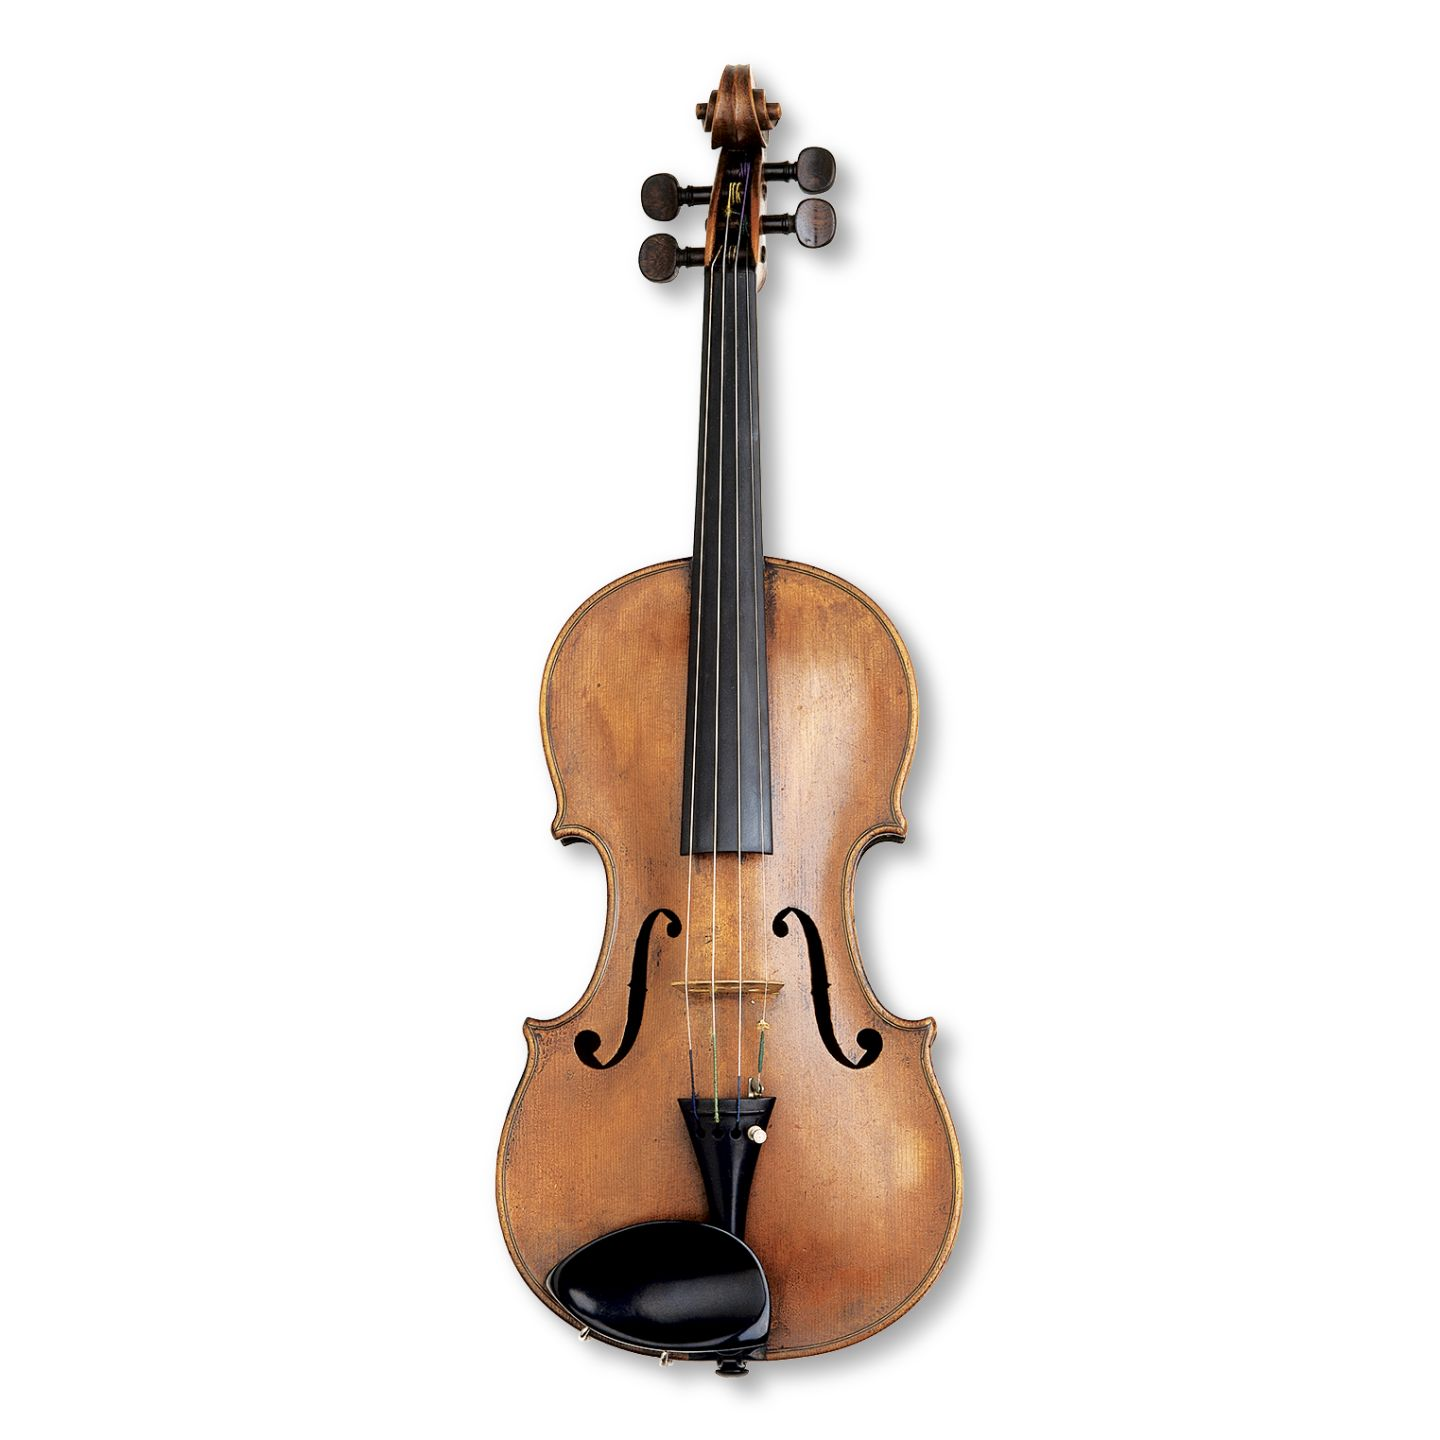 What is a violin violin facts for kids dk find out Vibeline